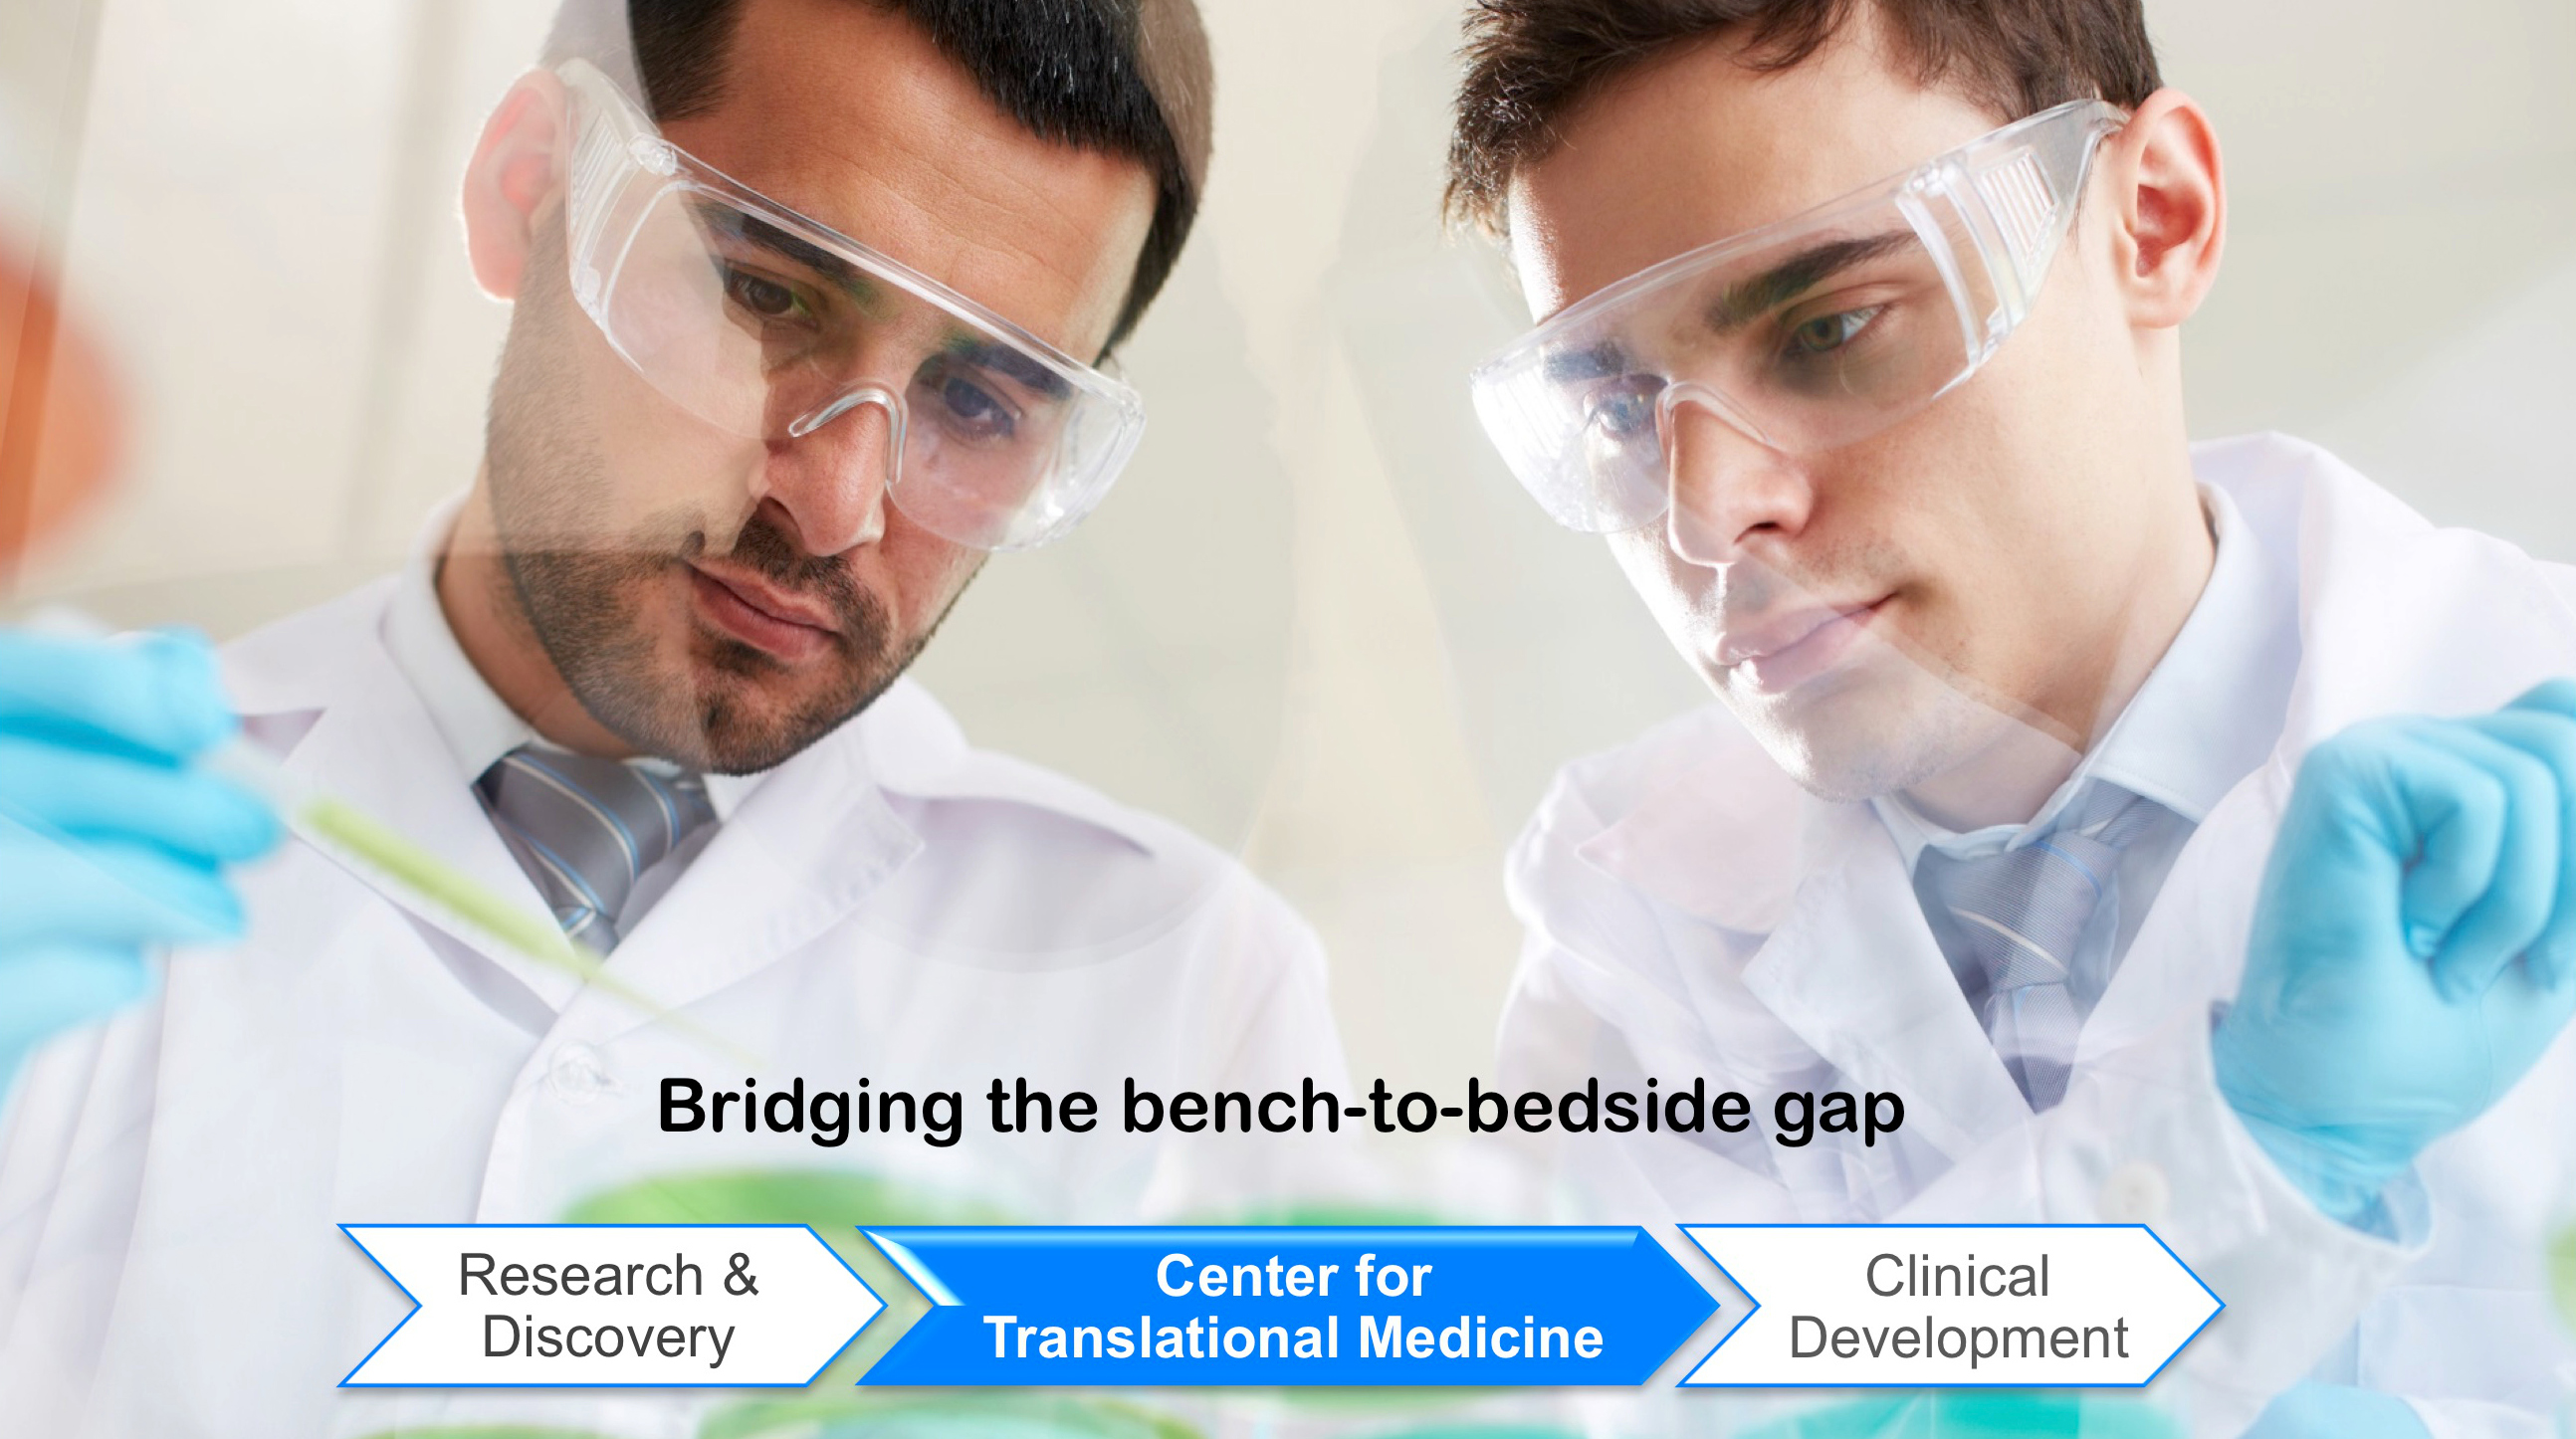 Bridging the bench-to-bedside gap